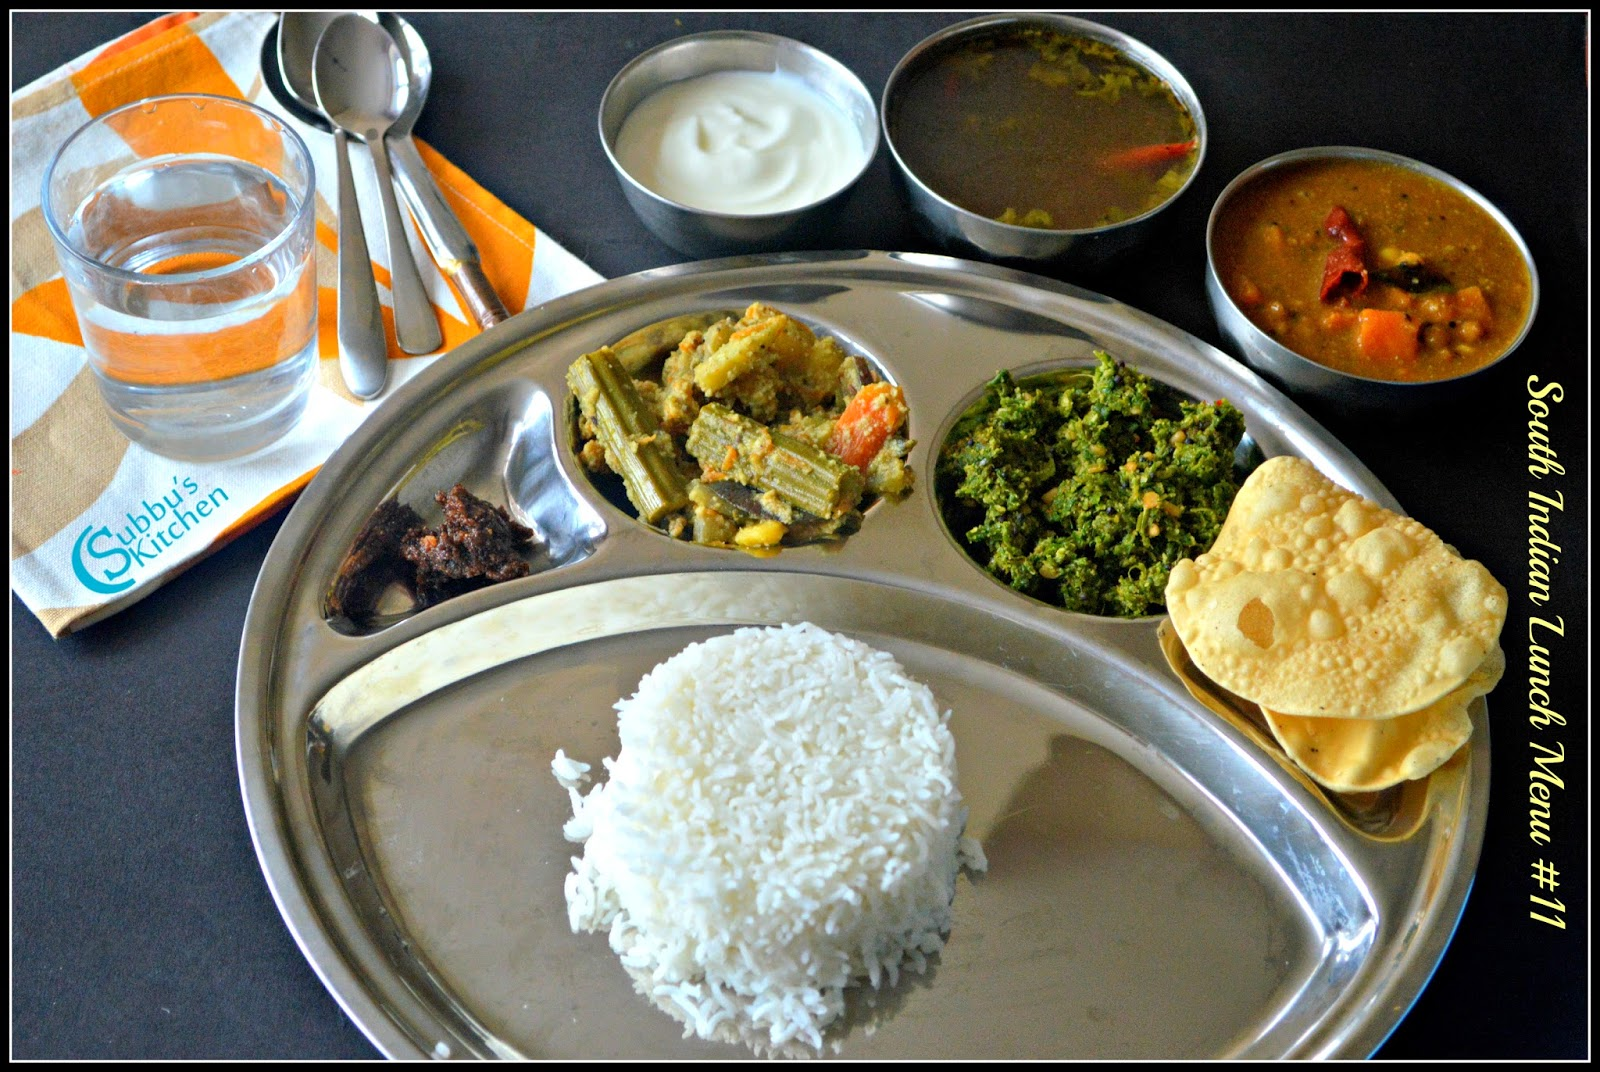 South Indian Lunch Menu 11 - Parangikai Puli Kuzhambu, Aviyal, Keerai Thuvaran and Kottu Rasam